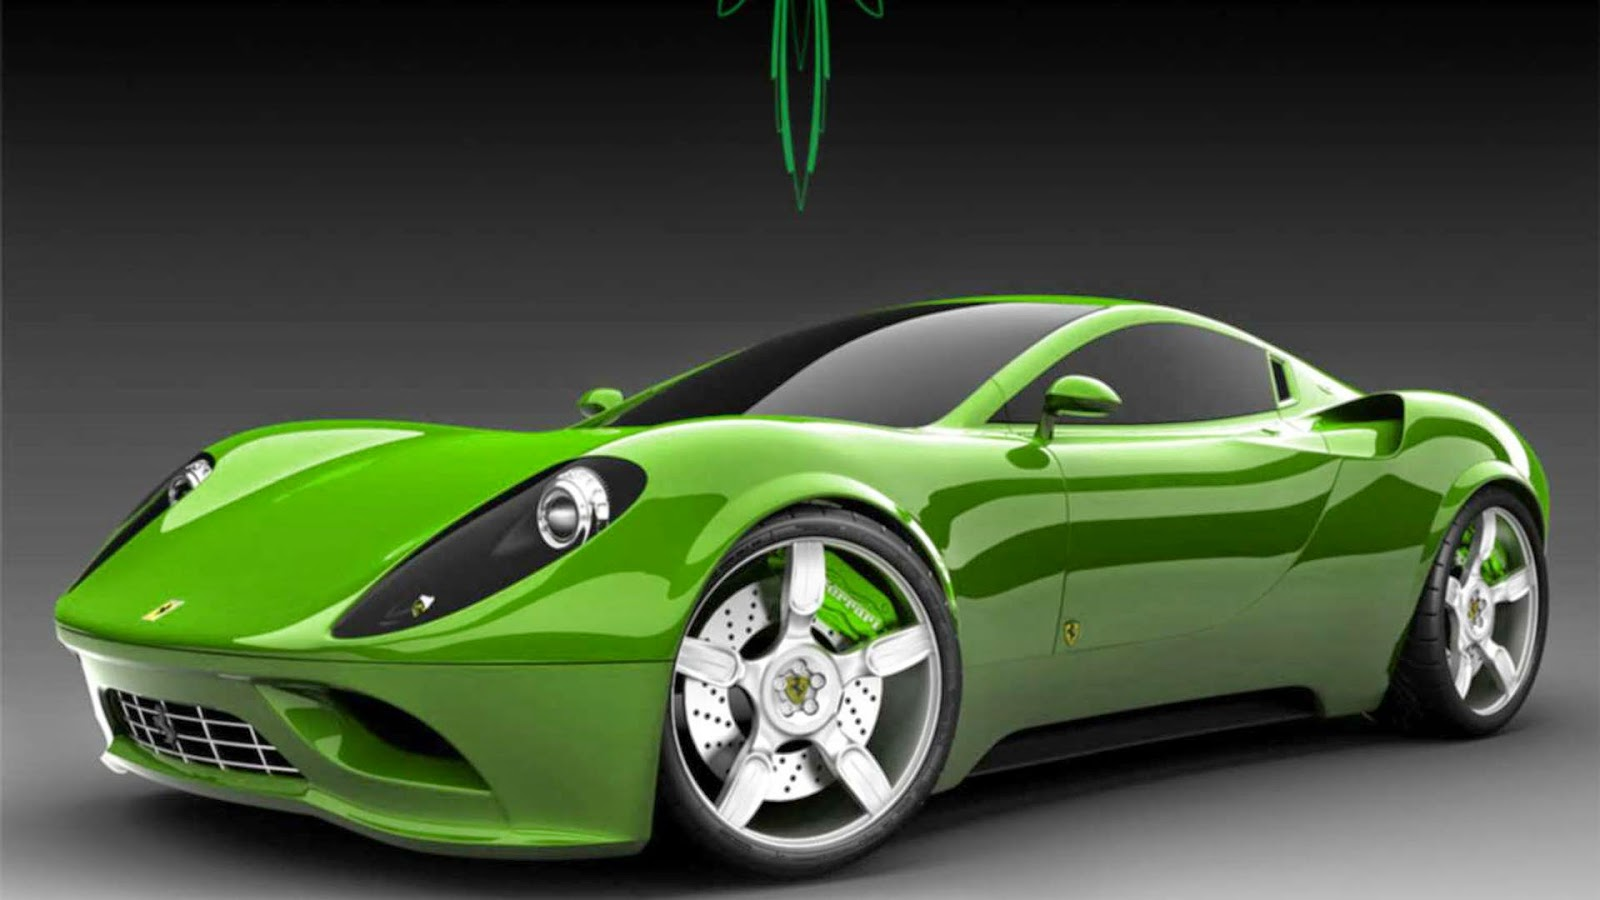 High Resolution 3d Wallpaper Green Ferrari Full Hd Wallpaper Galery Car Wallpaper